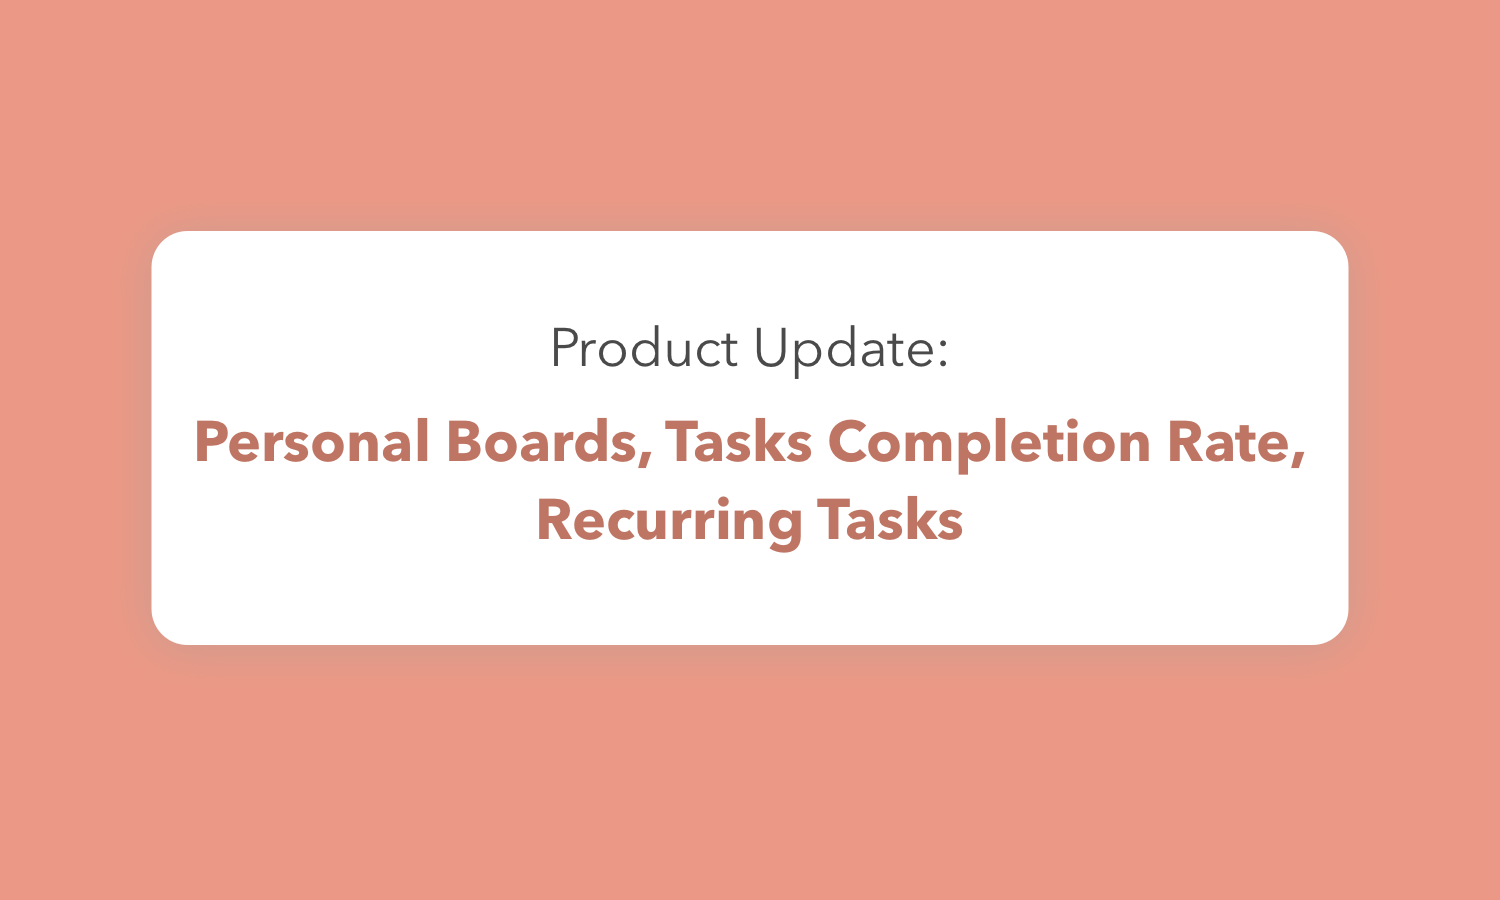 What's New: Personal Boards, Tasks Completion Rate, Recurring Tasks, Timeline Quarter View